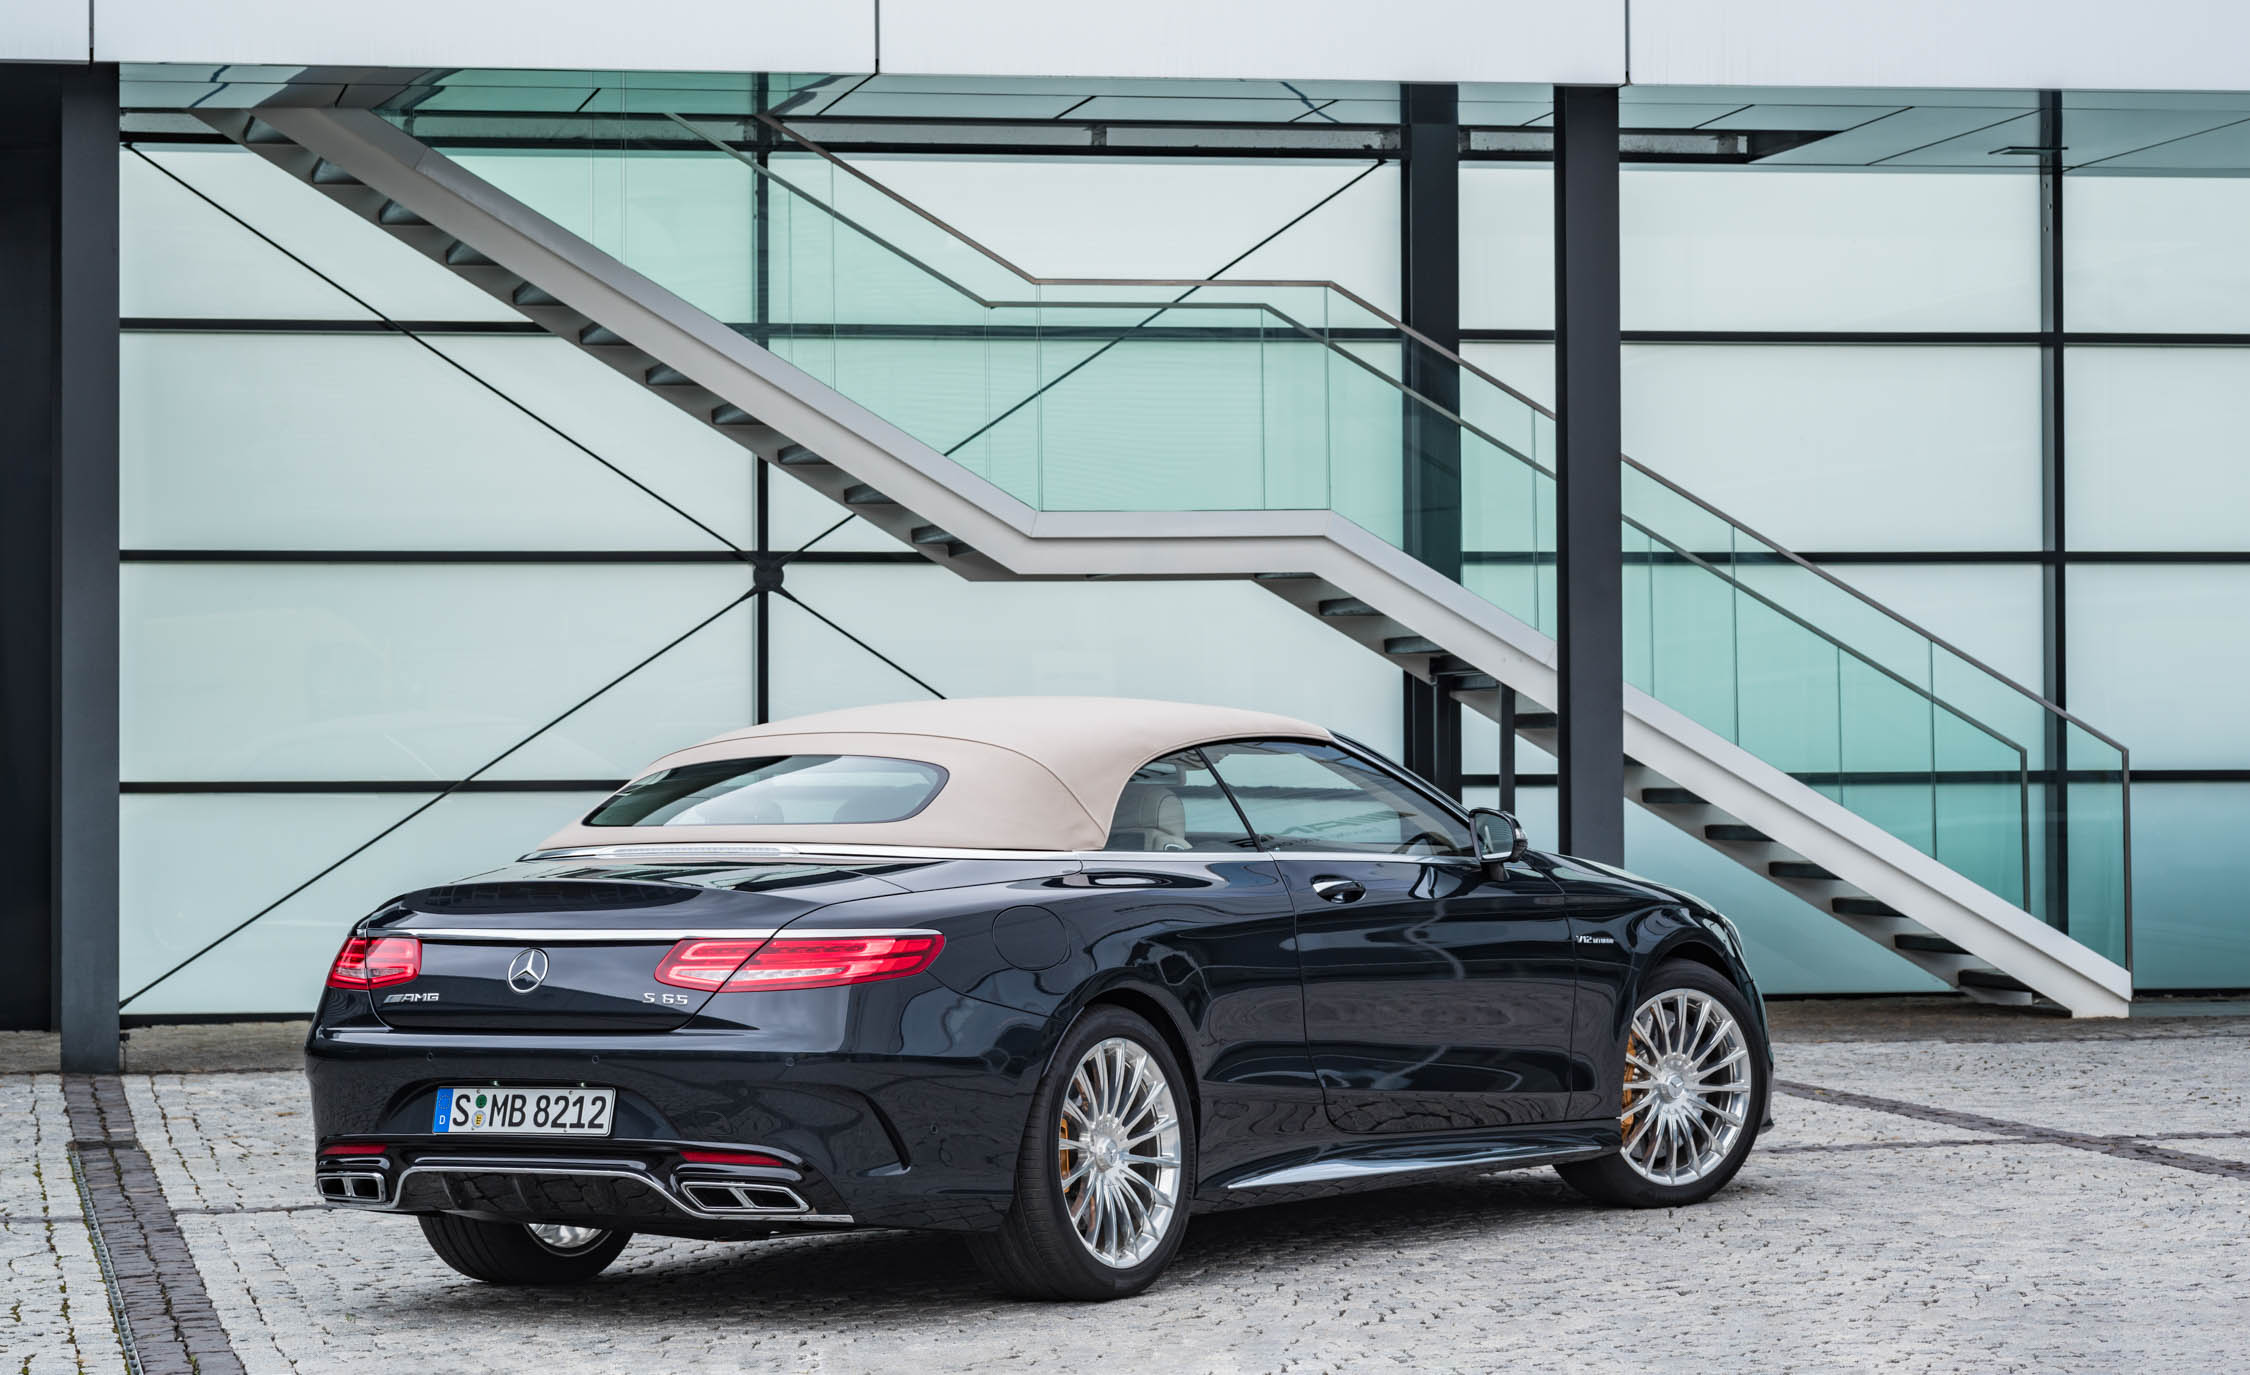 2017 Mercedes Amg S65 Cabriolet Exterior Rear And Side View Roof Close (Photo 5 of 15)